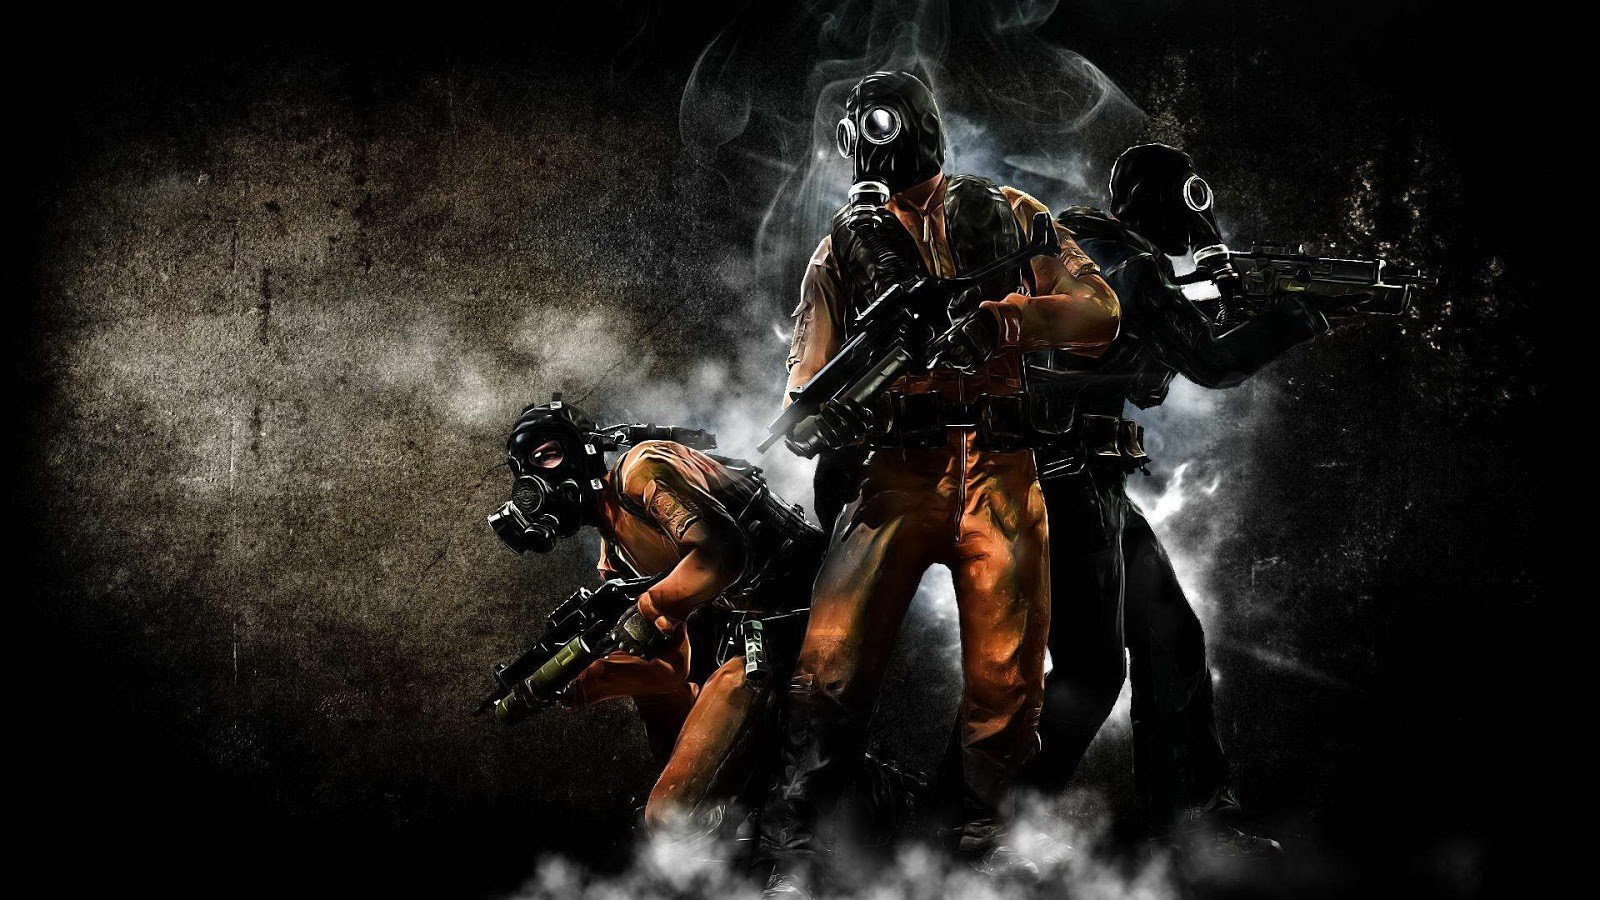 Call Of Duty Black Ops 2 Wallpapers 1600x900 Desktop Backgrounds